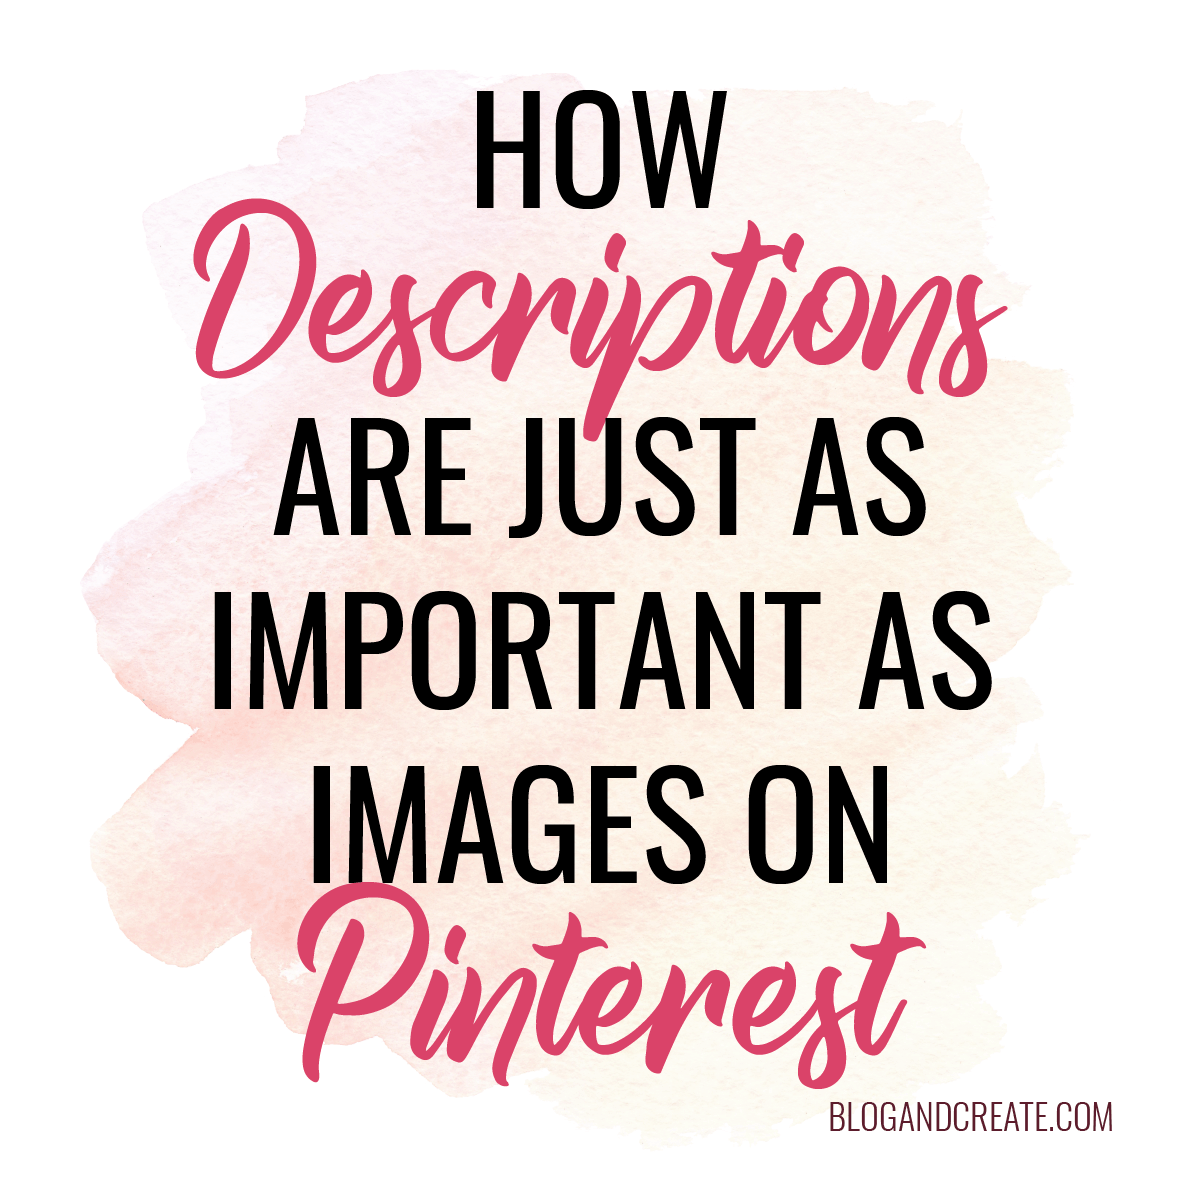 How Descriptions are as Equally Important as Images on Pinterest